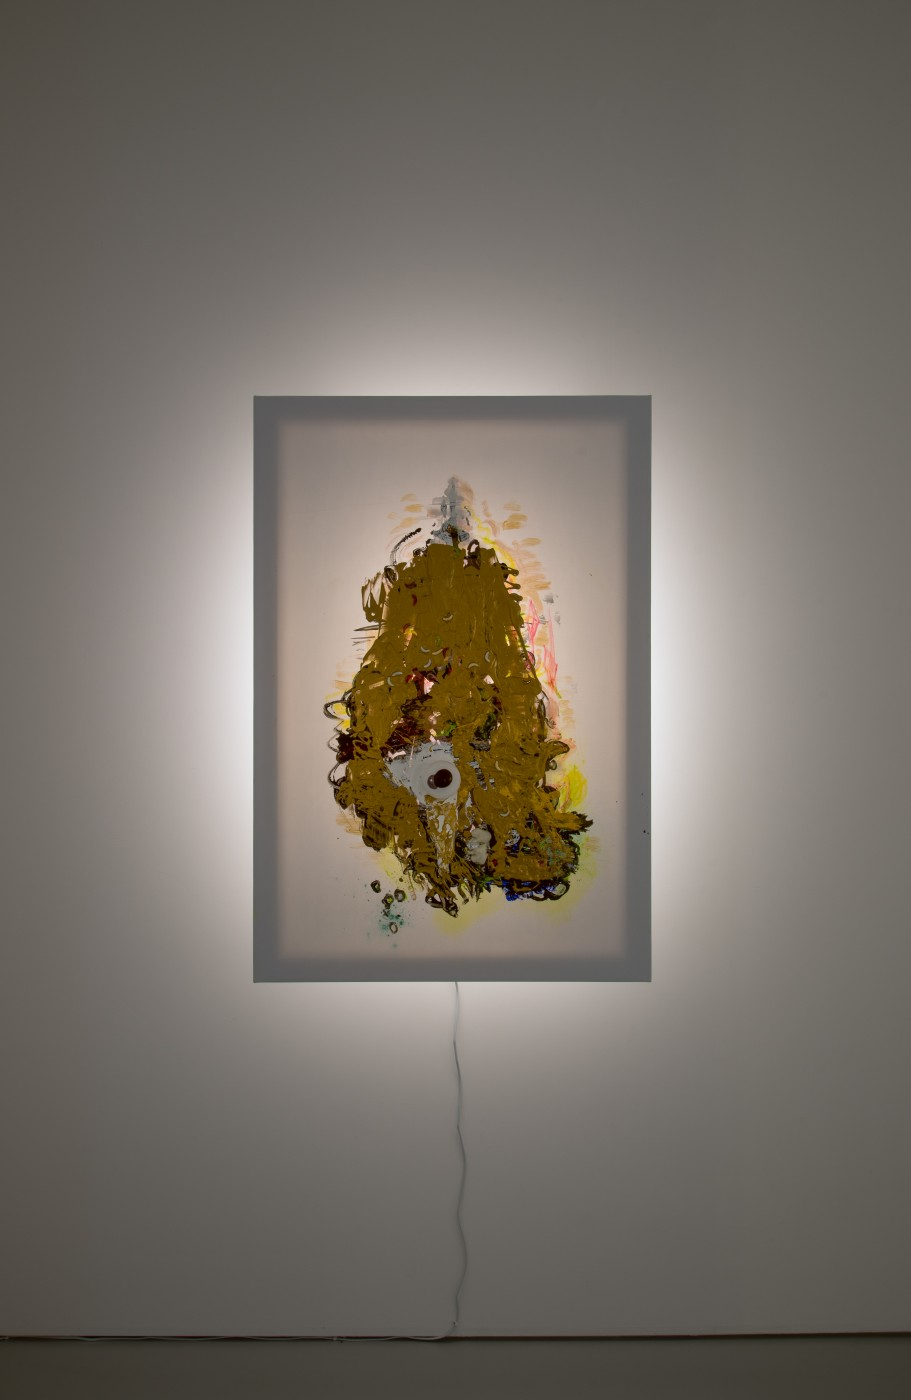 GOLD  Chandelier</I>, 2017 Acrylic and inkjet on vinyl, plastic, polystyrene, wood, steel, LED light 108,5 x 73 x 21 cm / 42.7 x 28.7 x 8.2 in  JOHN RUSSELL